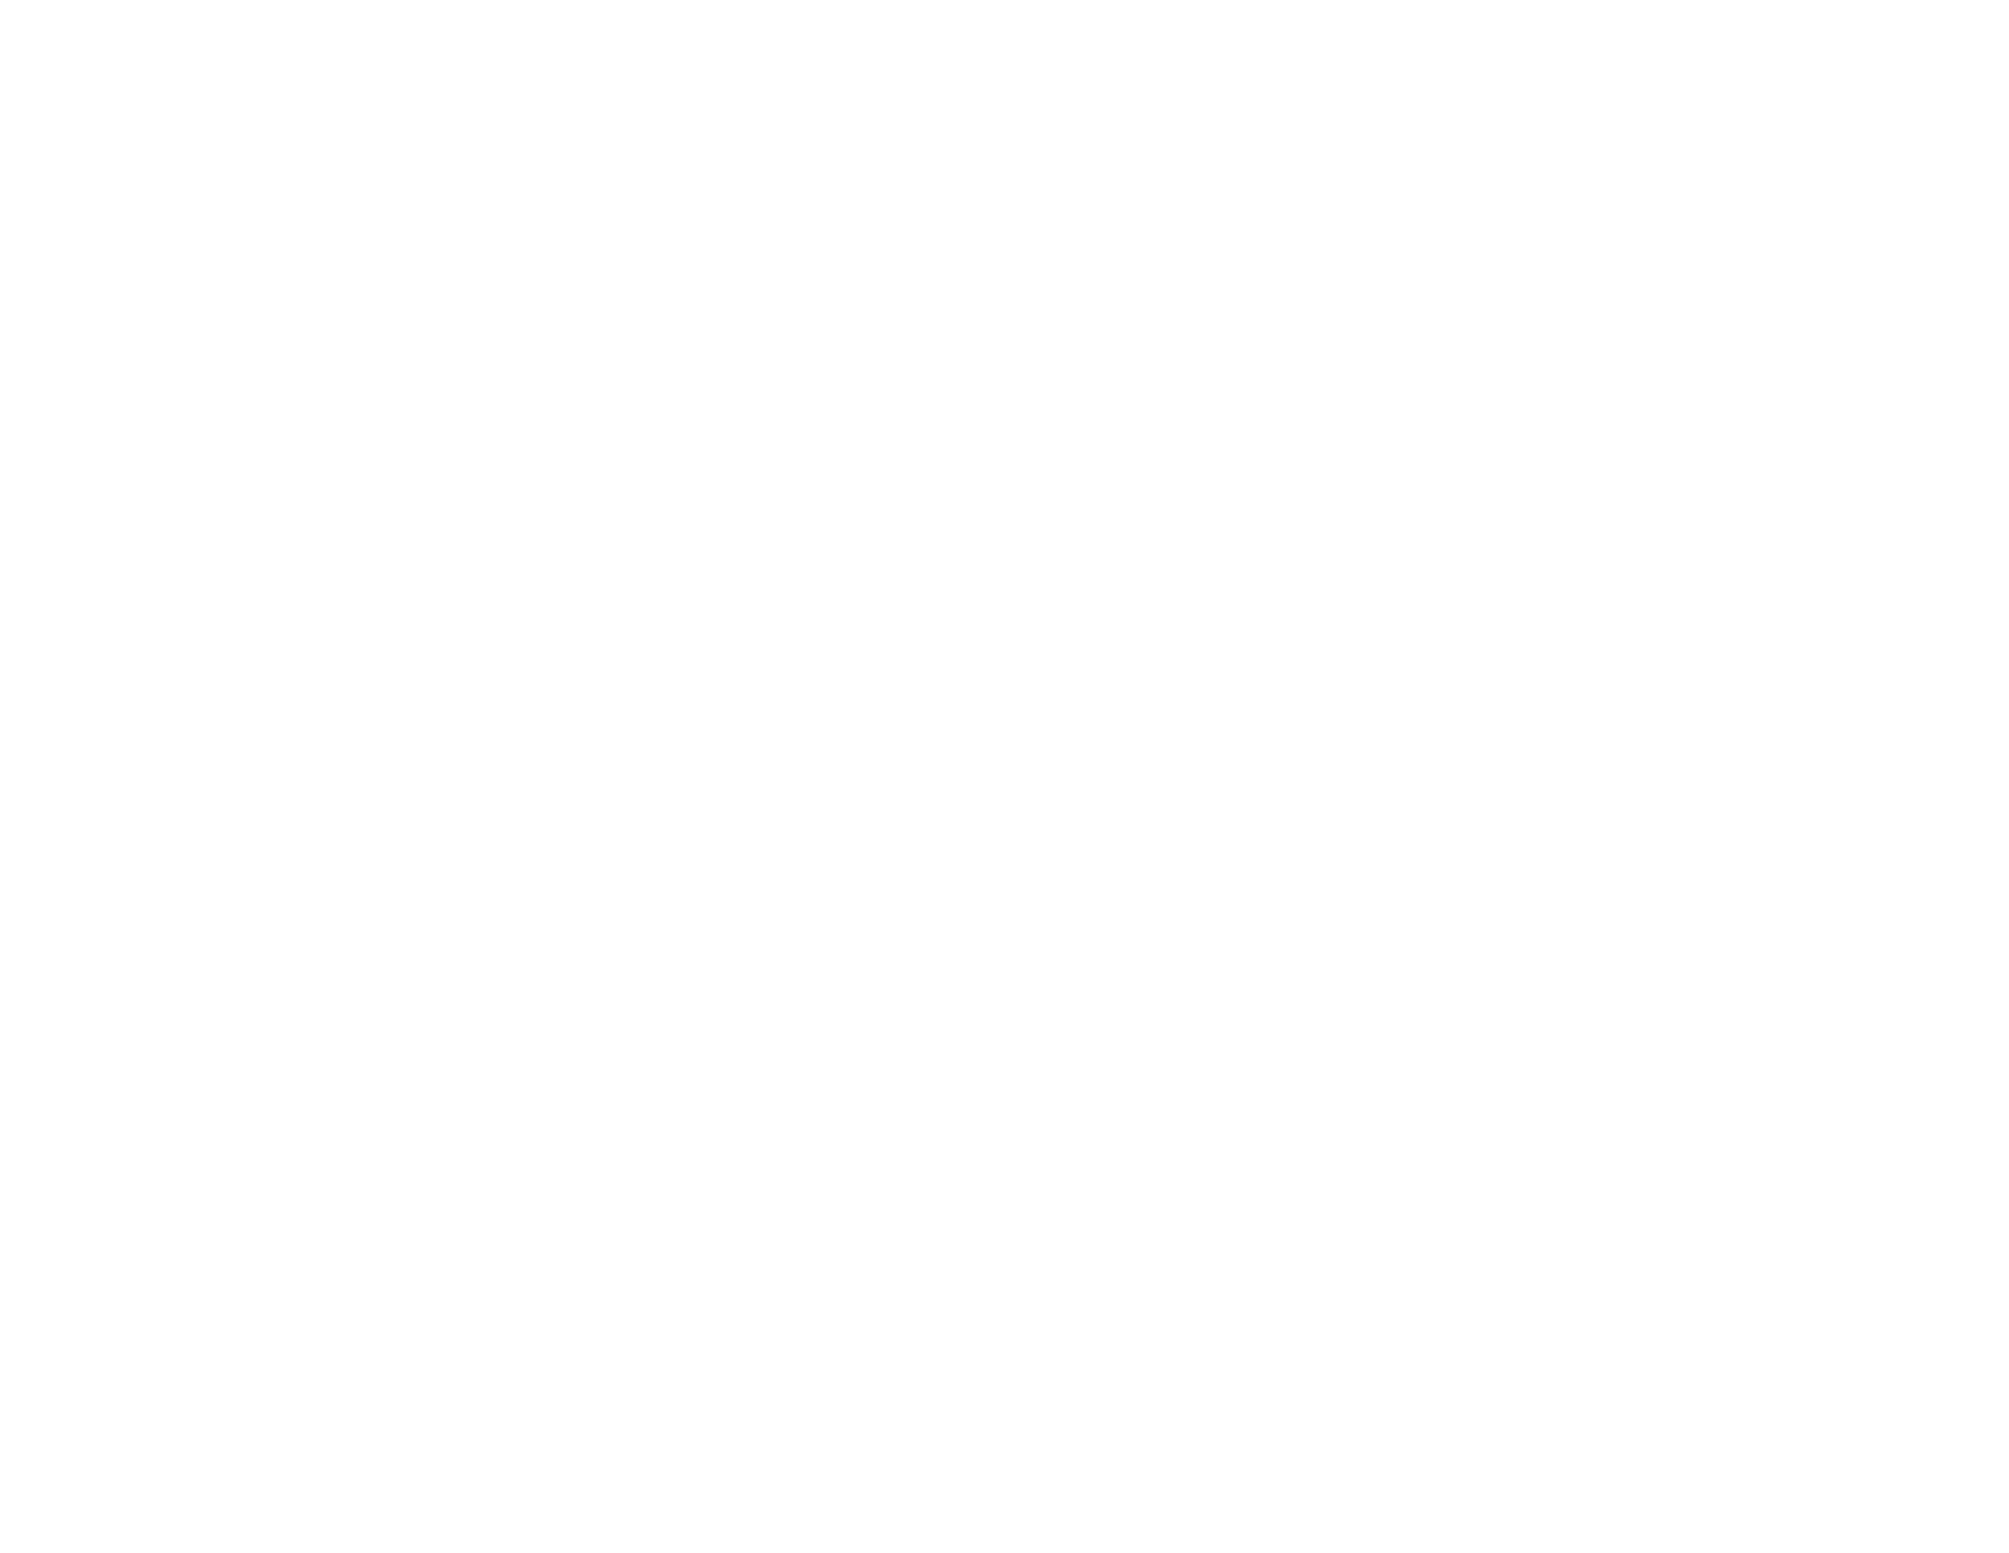 biothings studio logo